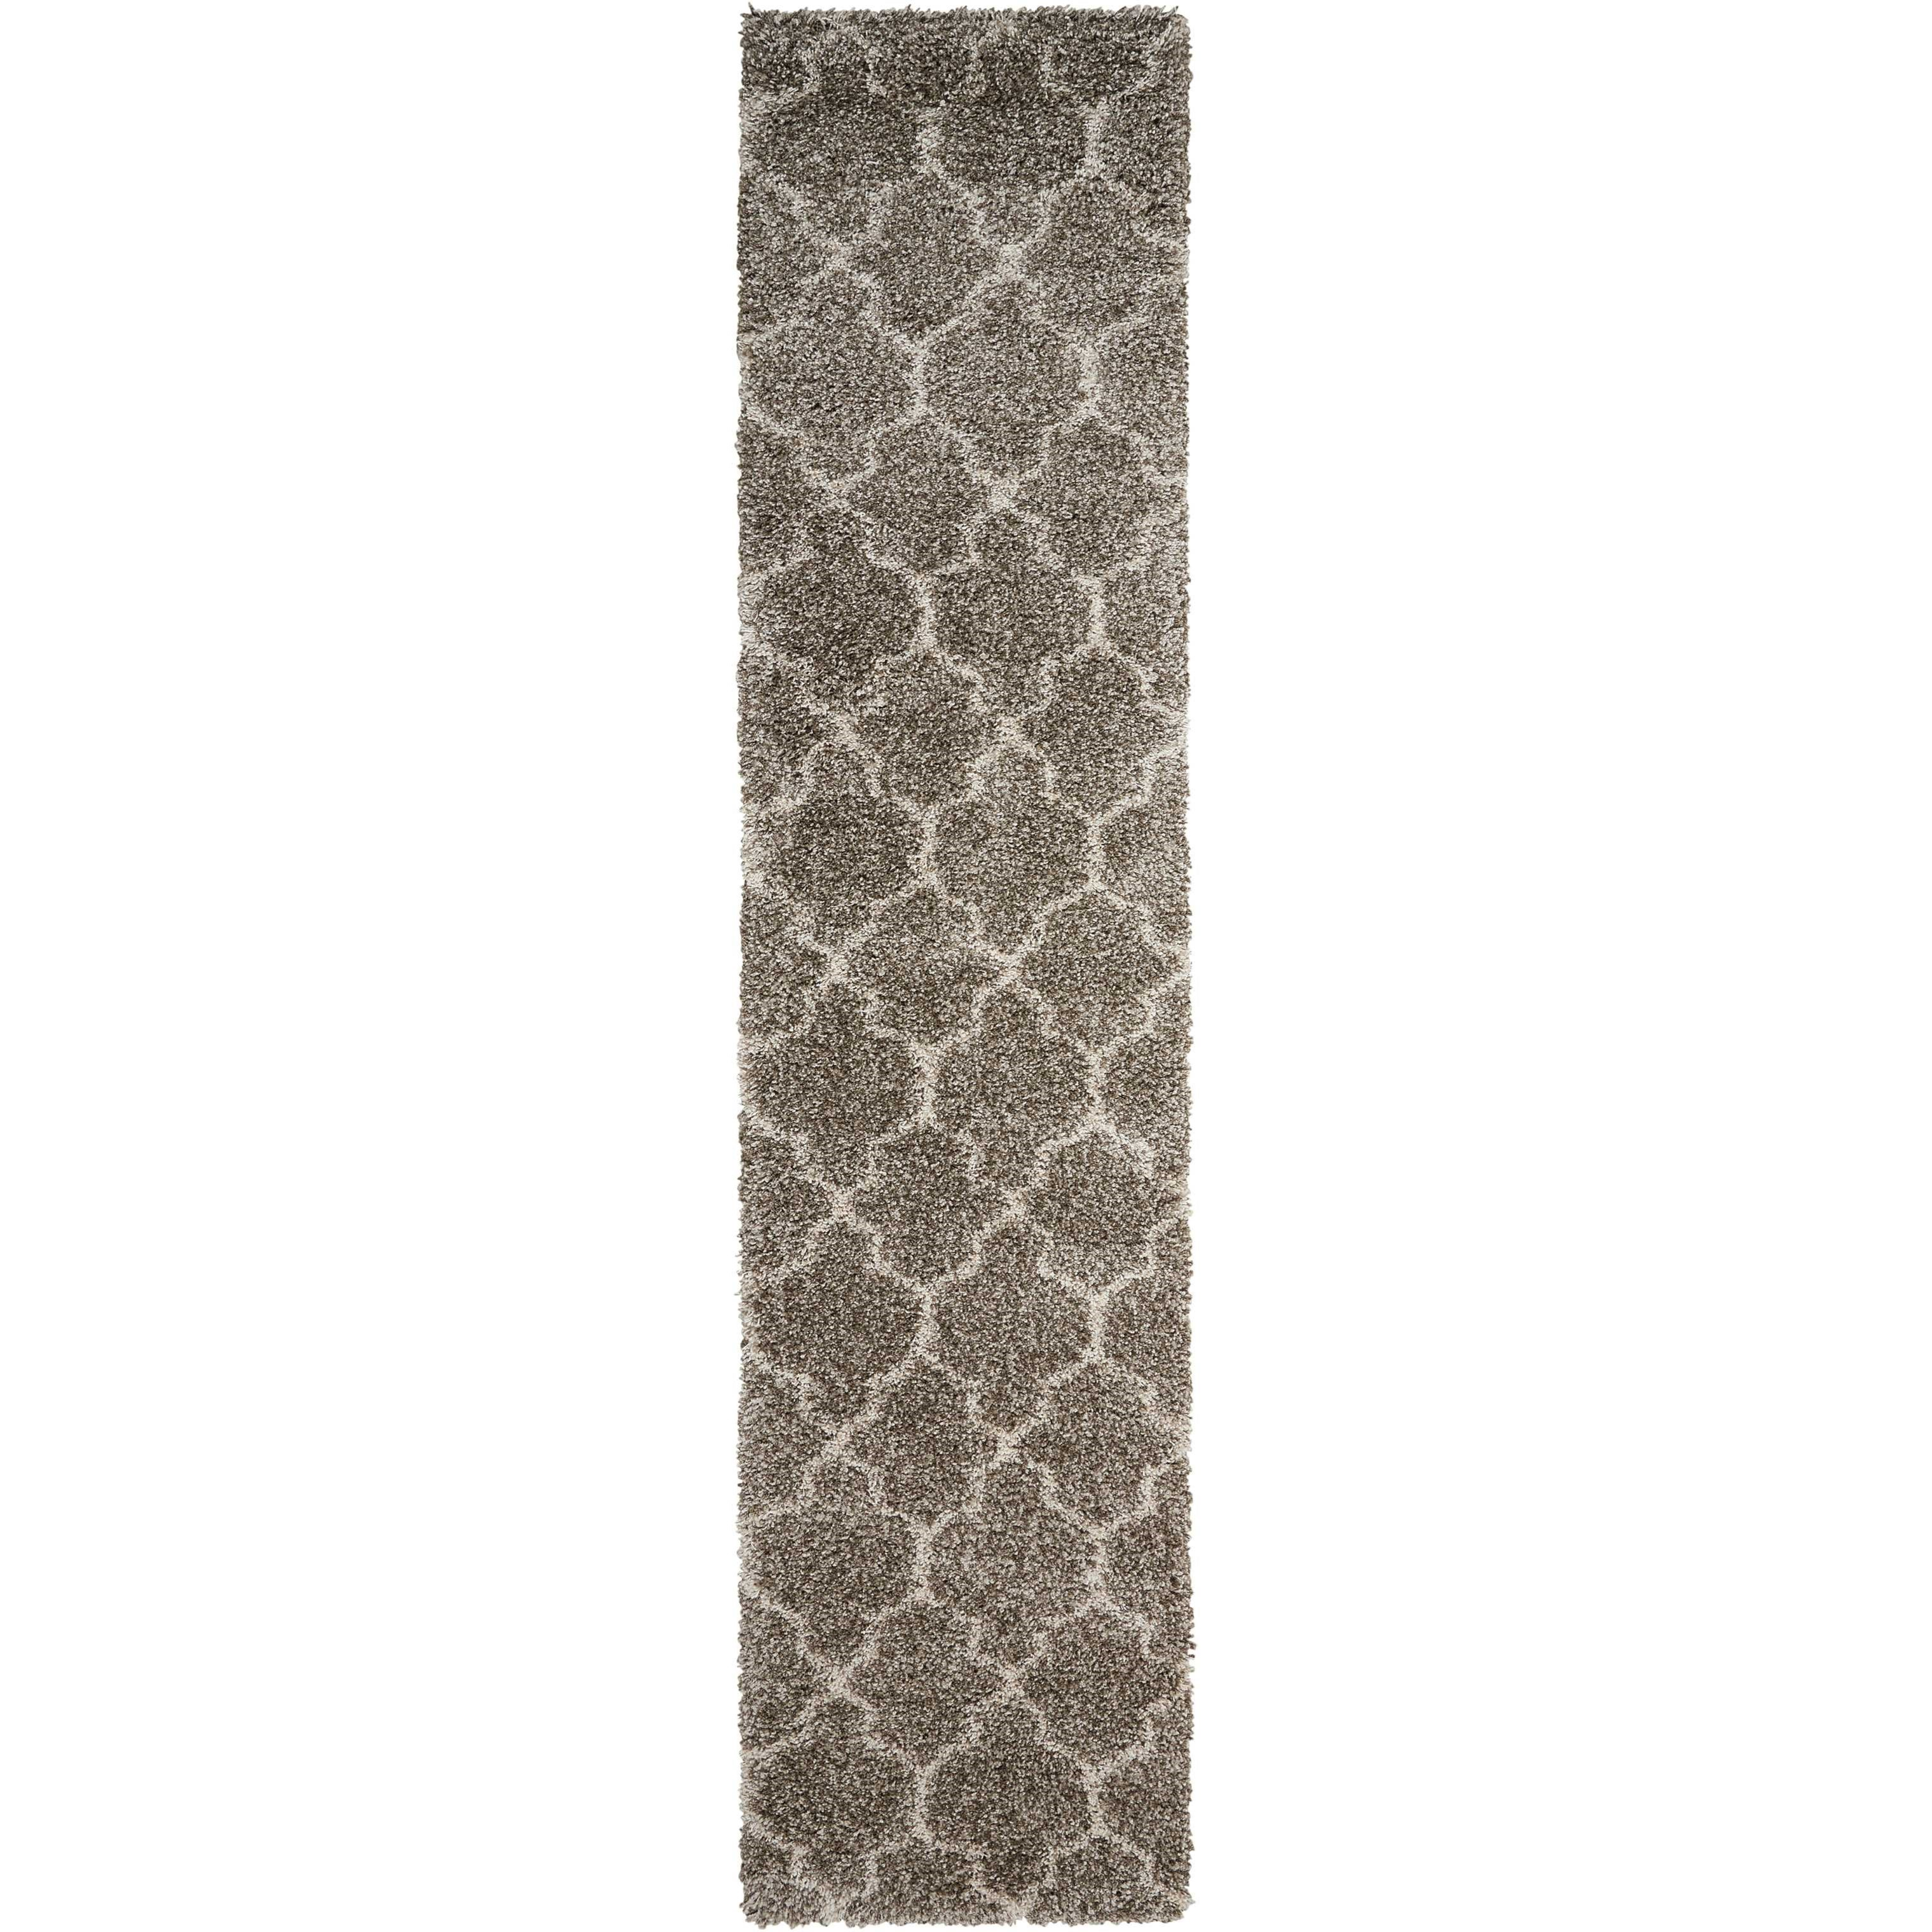 """Amore 2'2"""" x 10' Stone Runner Rug by Nourison at Sprintz Furniture"""